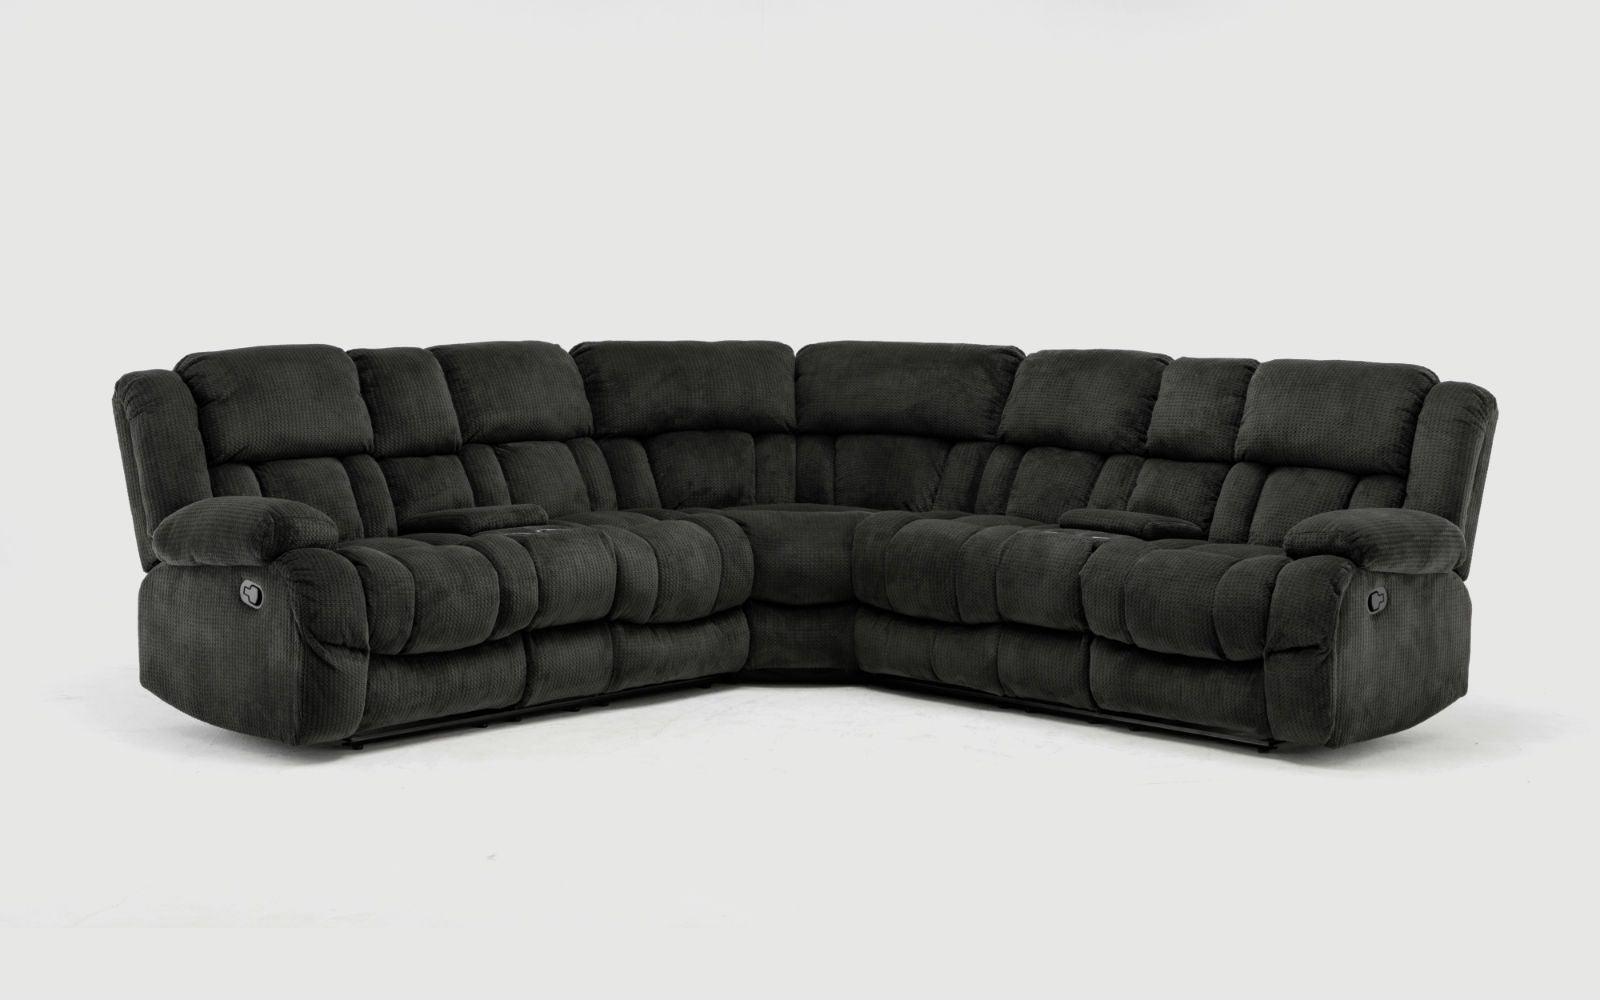 ... Raymond Linen Fabric L Shape Sectional Recliner Sofa In Charcoal ...